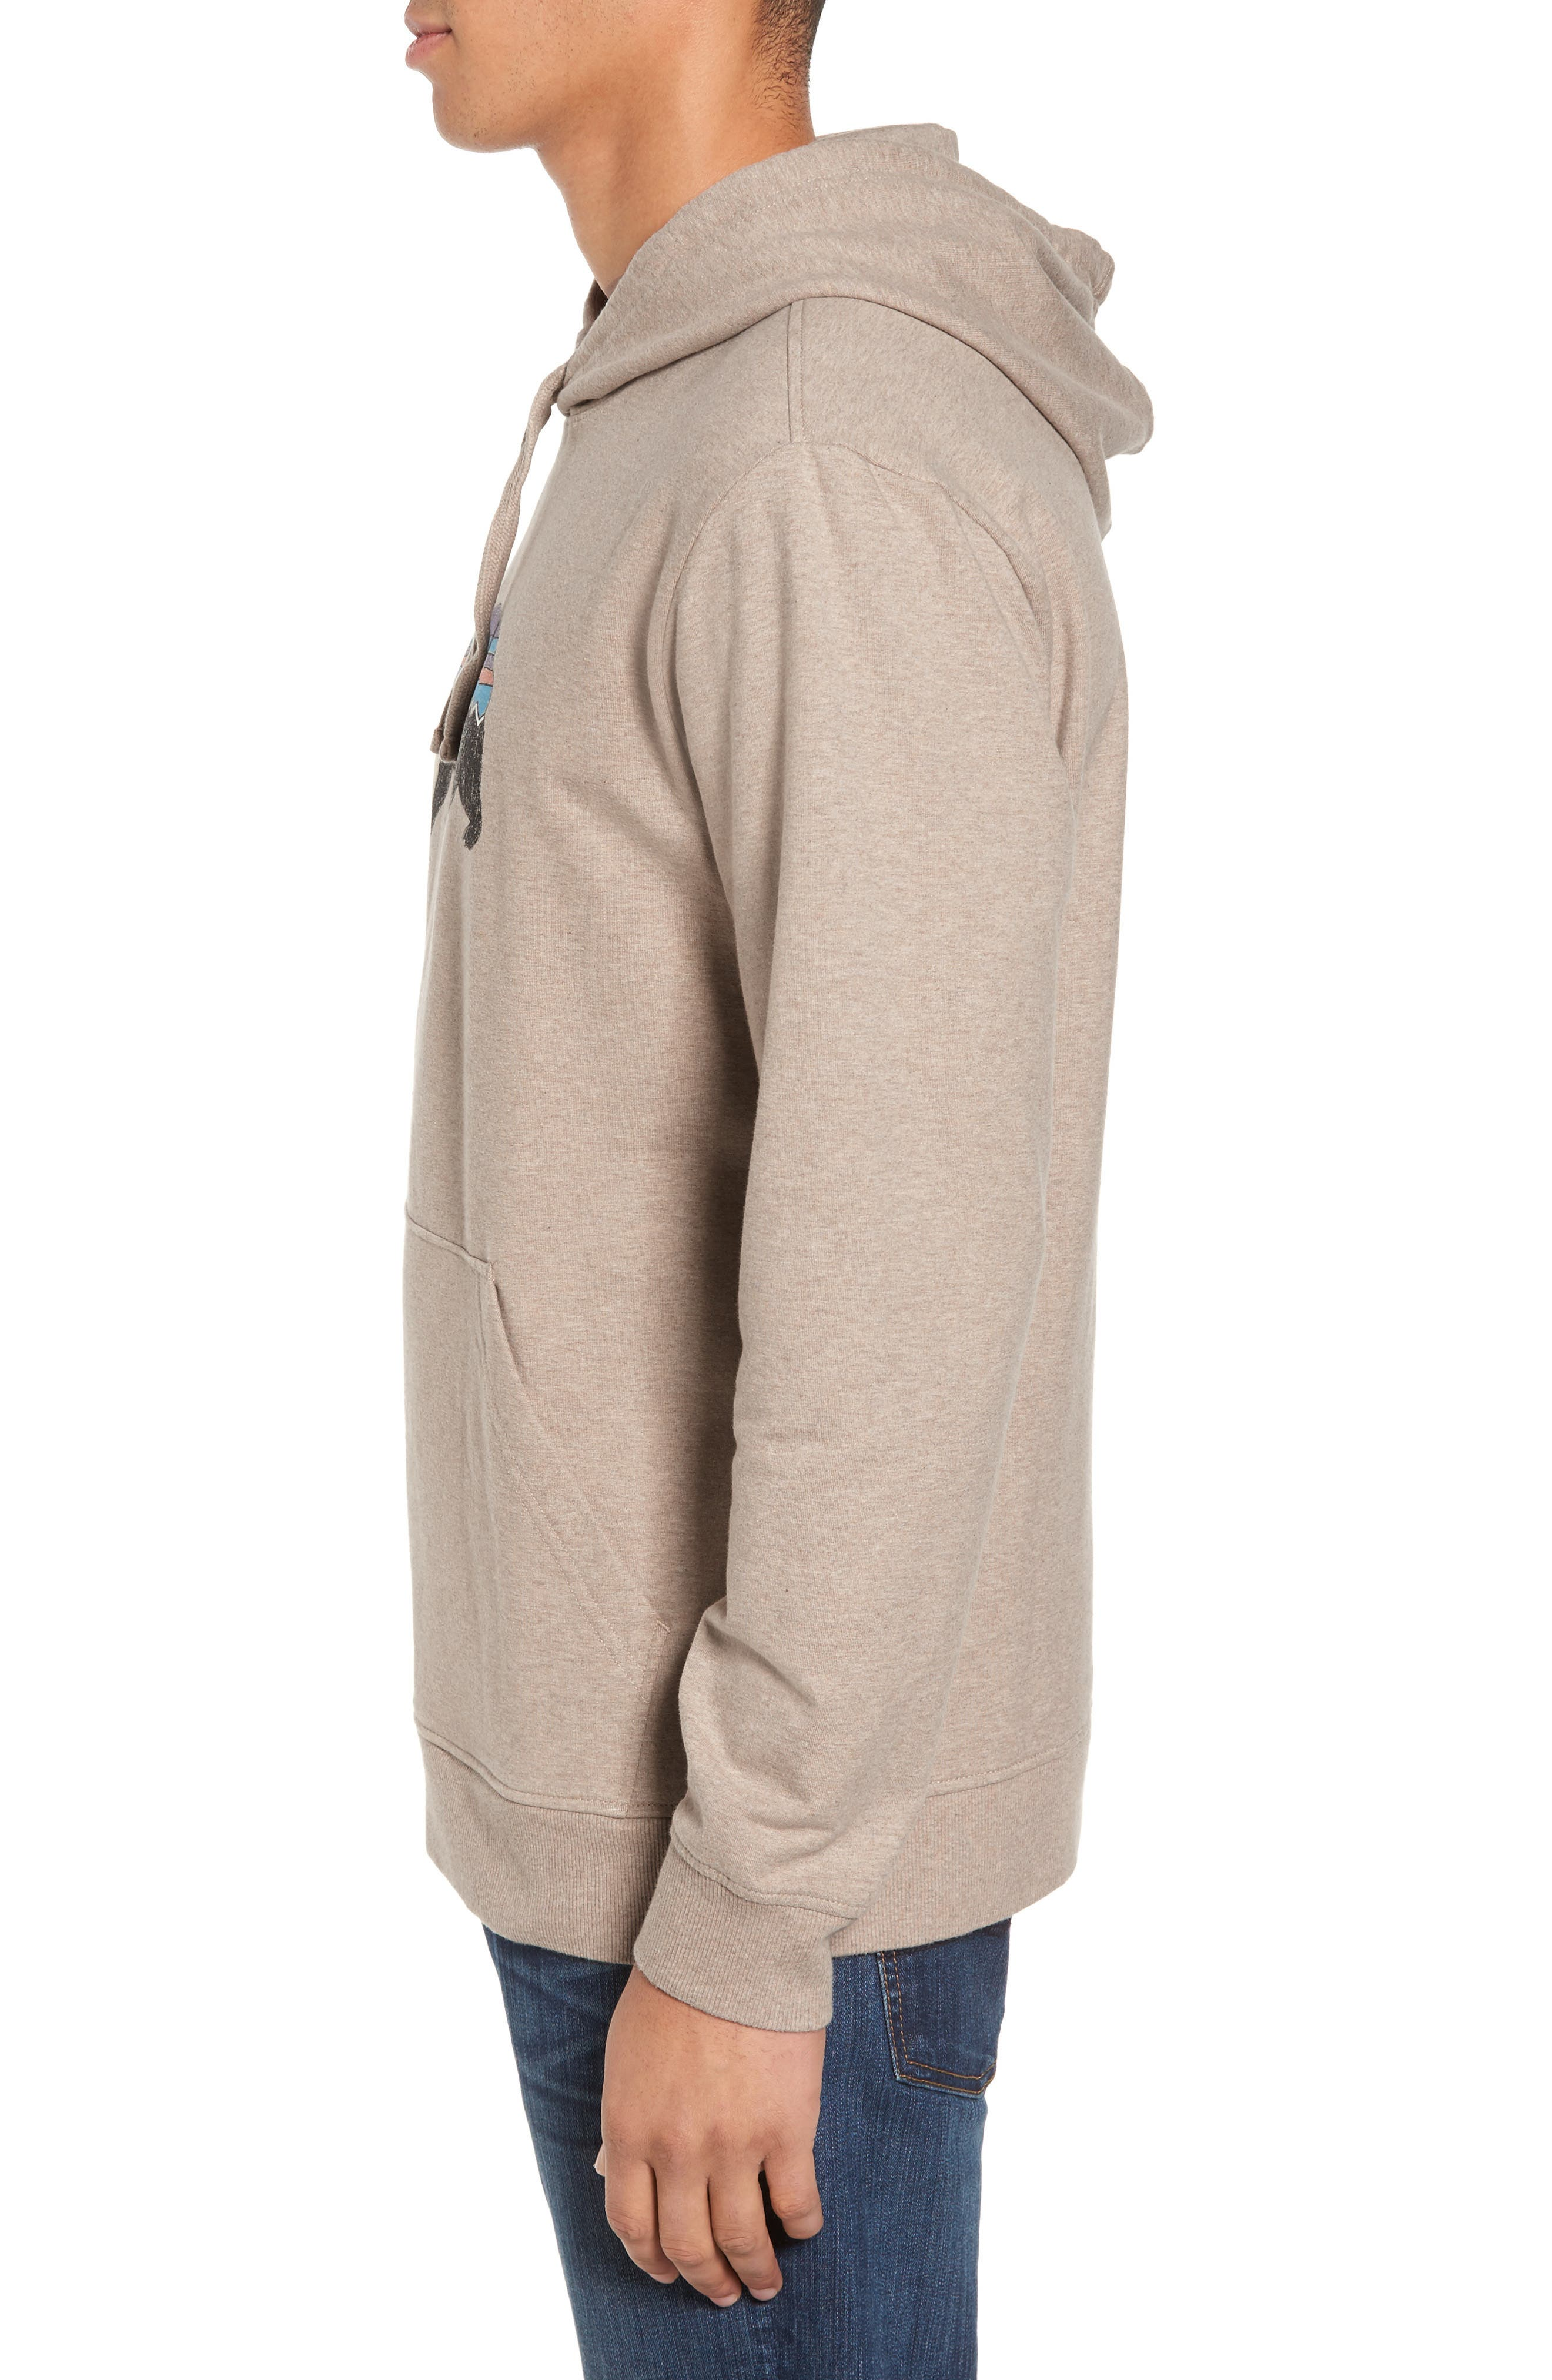 Fitz Roy Bear Graphic Hoodie,                             Alternate thumbnail 3, color,                             El Cap Khaki